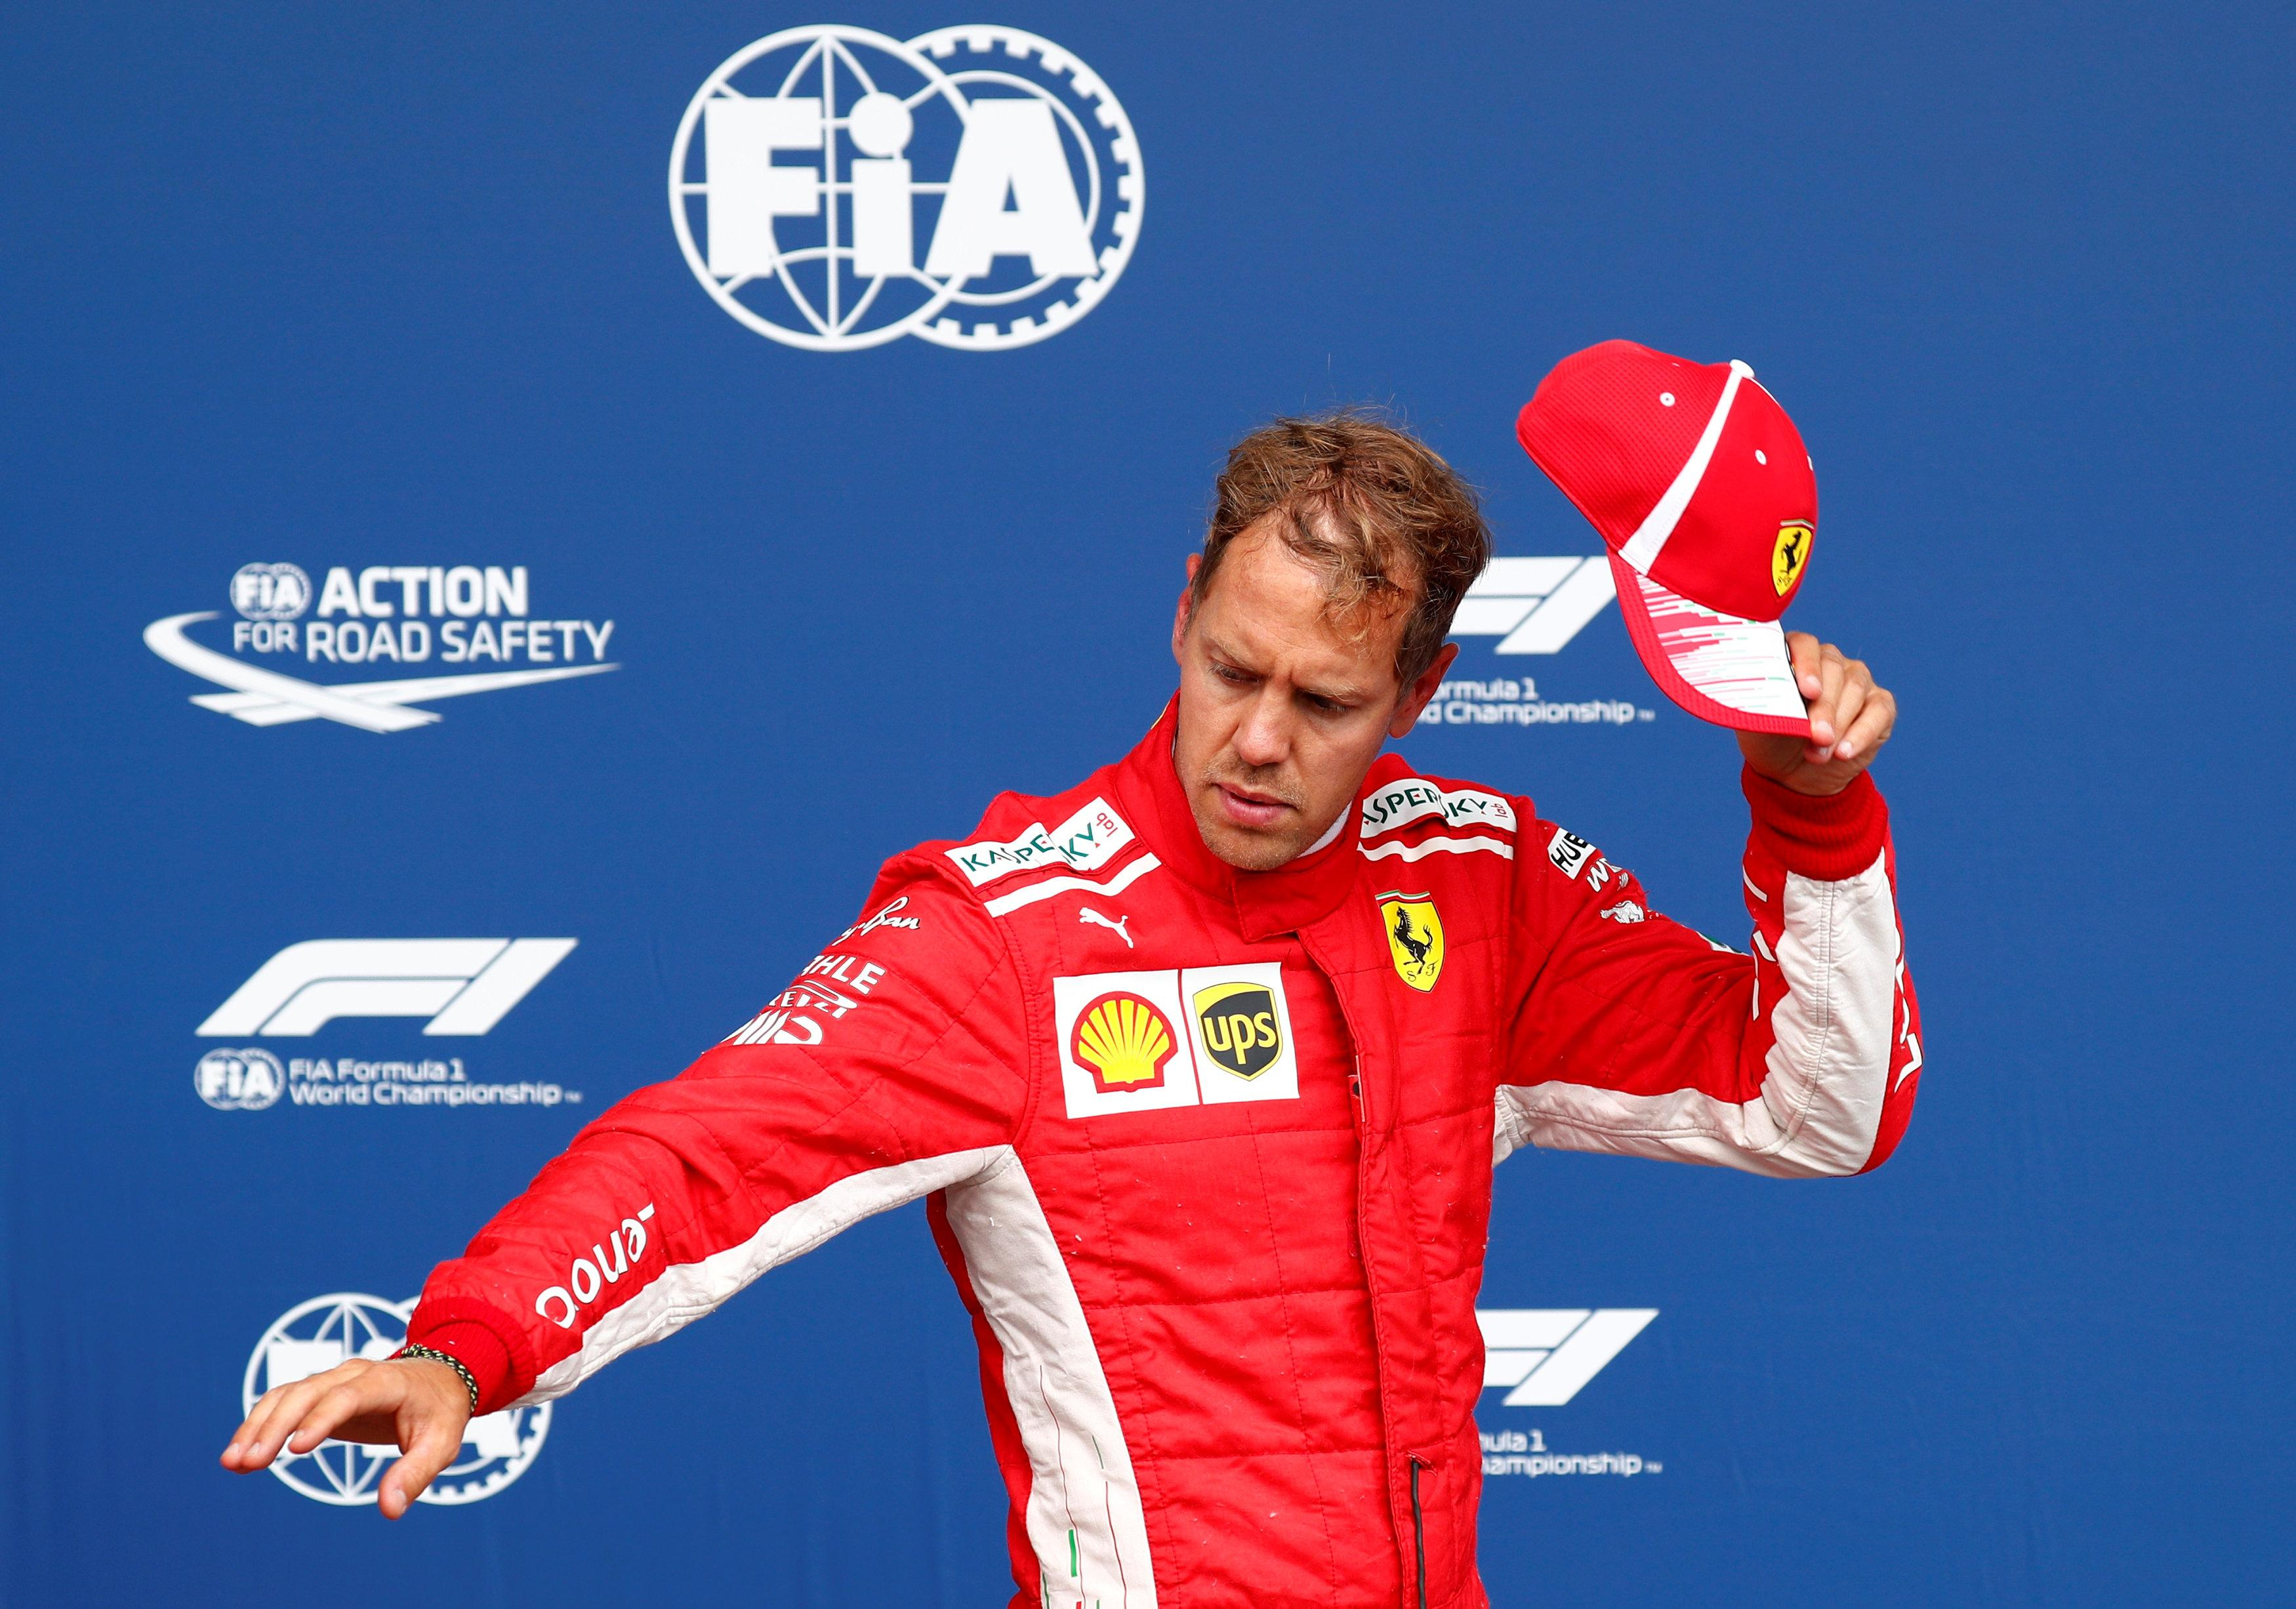 Vettel will start the Belgian Grand Prix from second on the grid with Esteban Ocon third